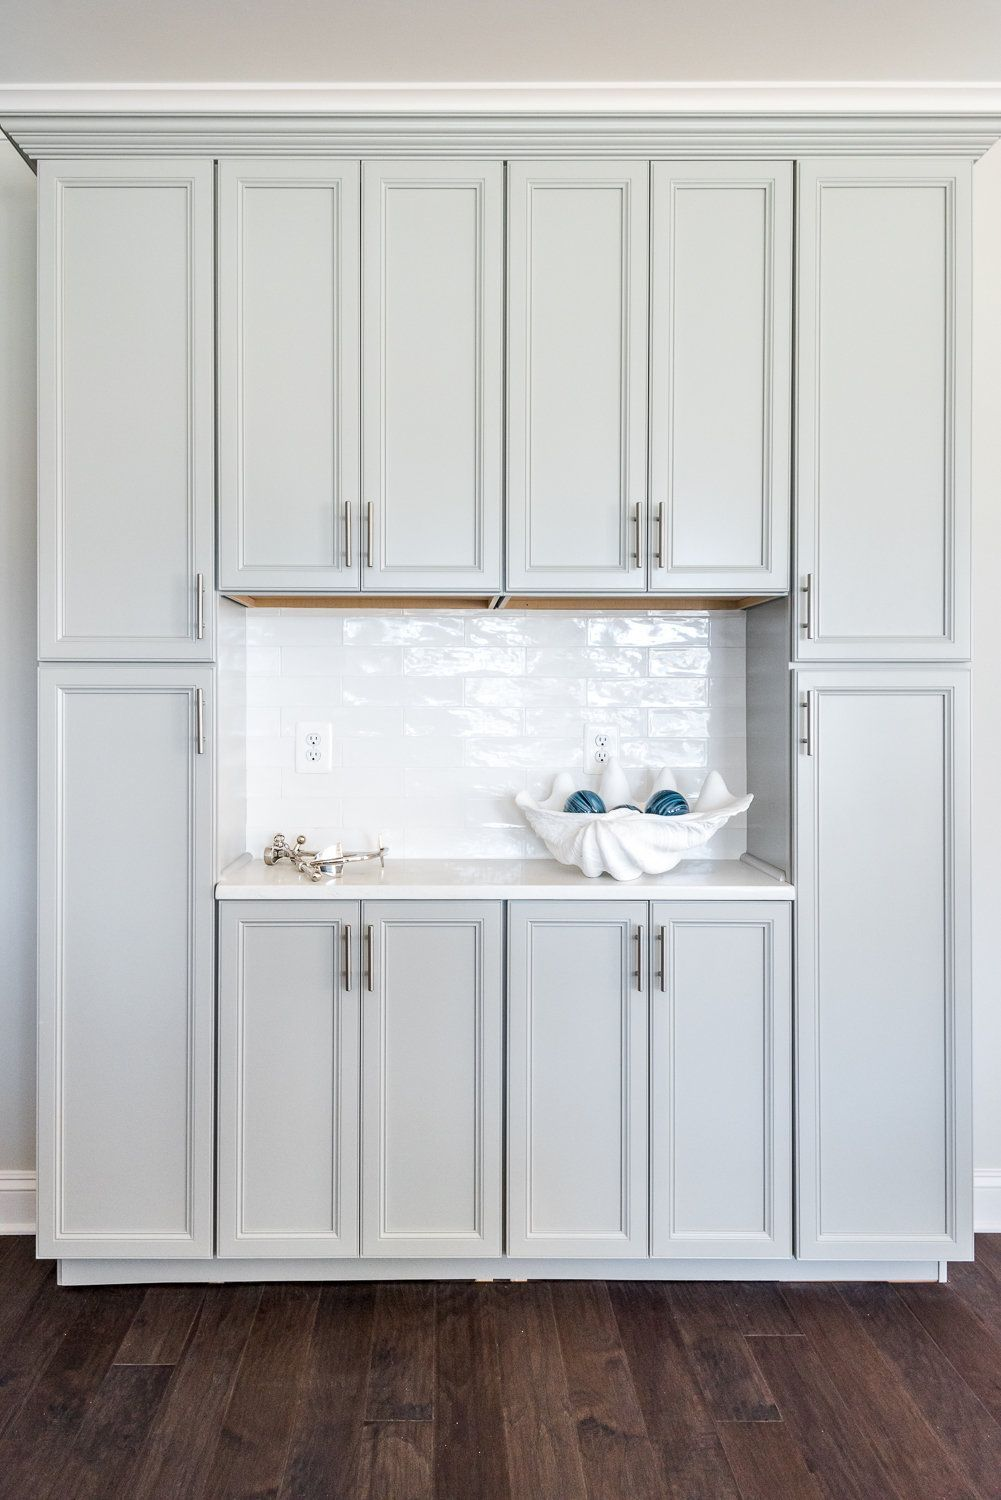 Floor To Ceiling Cabinets In 2020 Kitchen Cabinets To Ceiling Cabinets To Ceiling Floor To Ceiling Cabinets